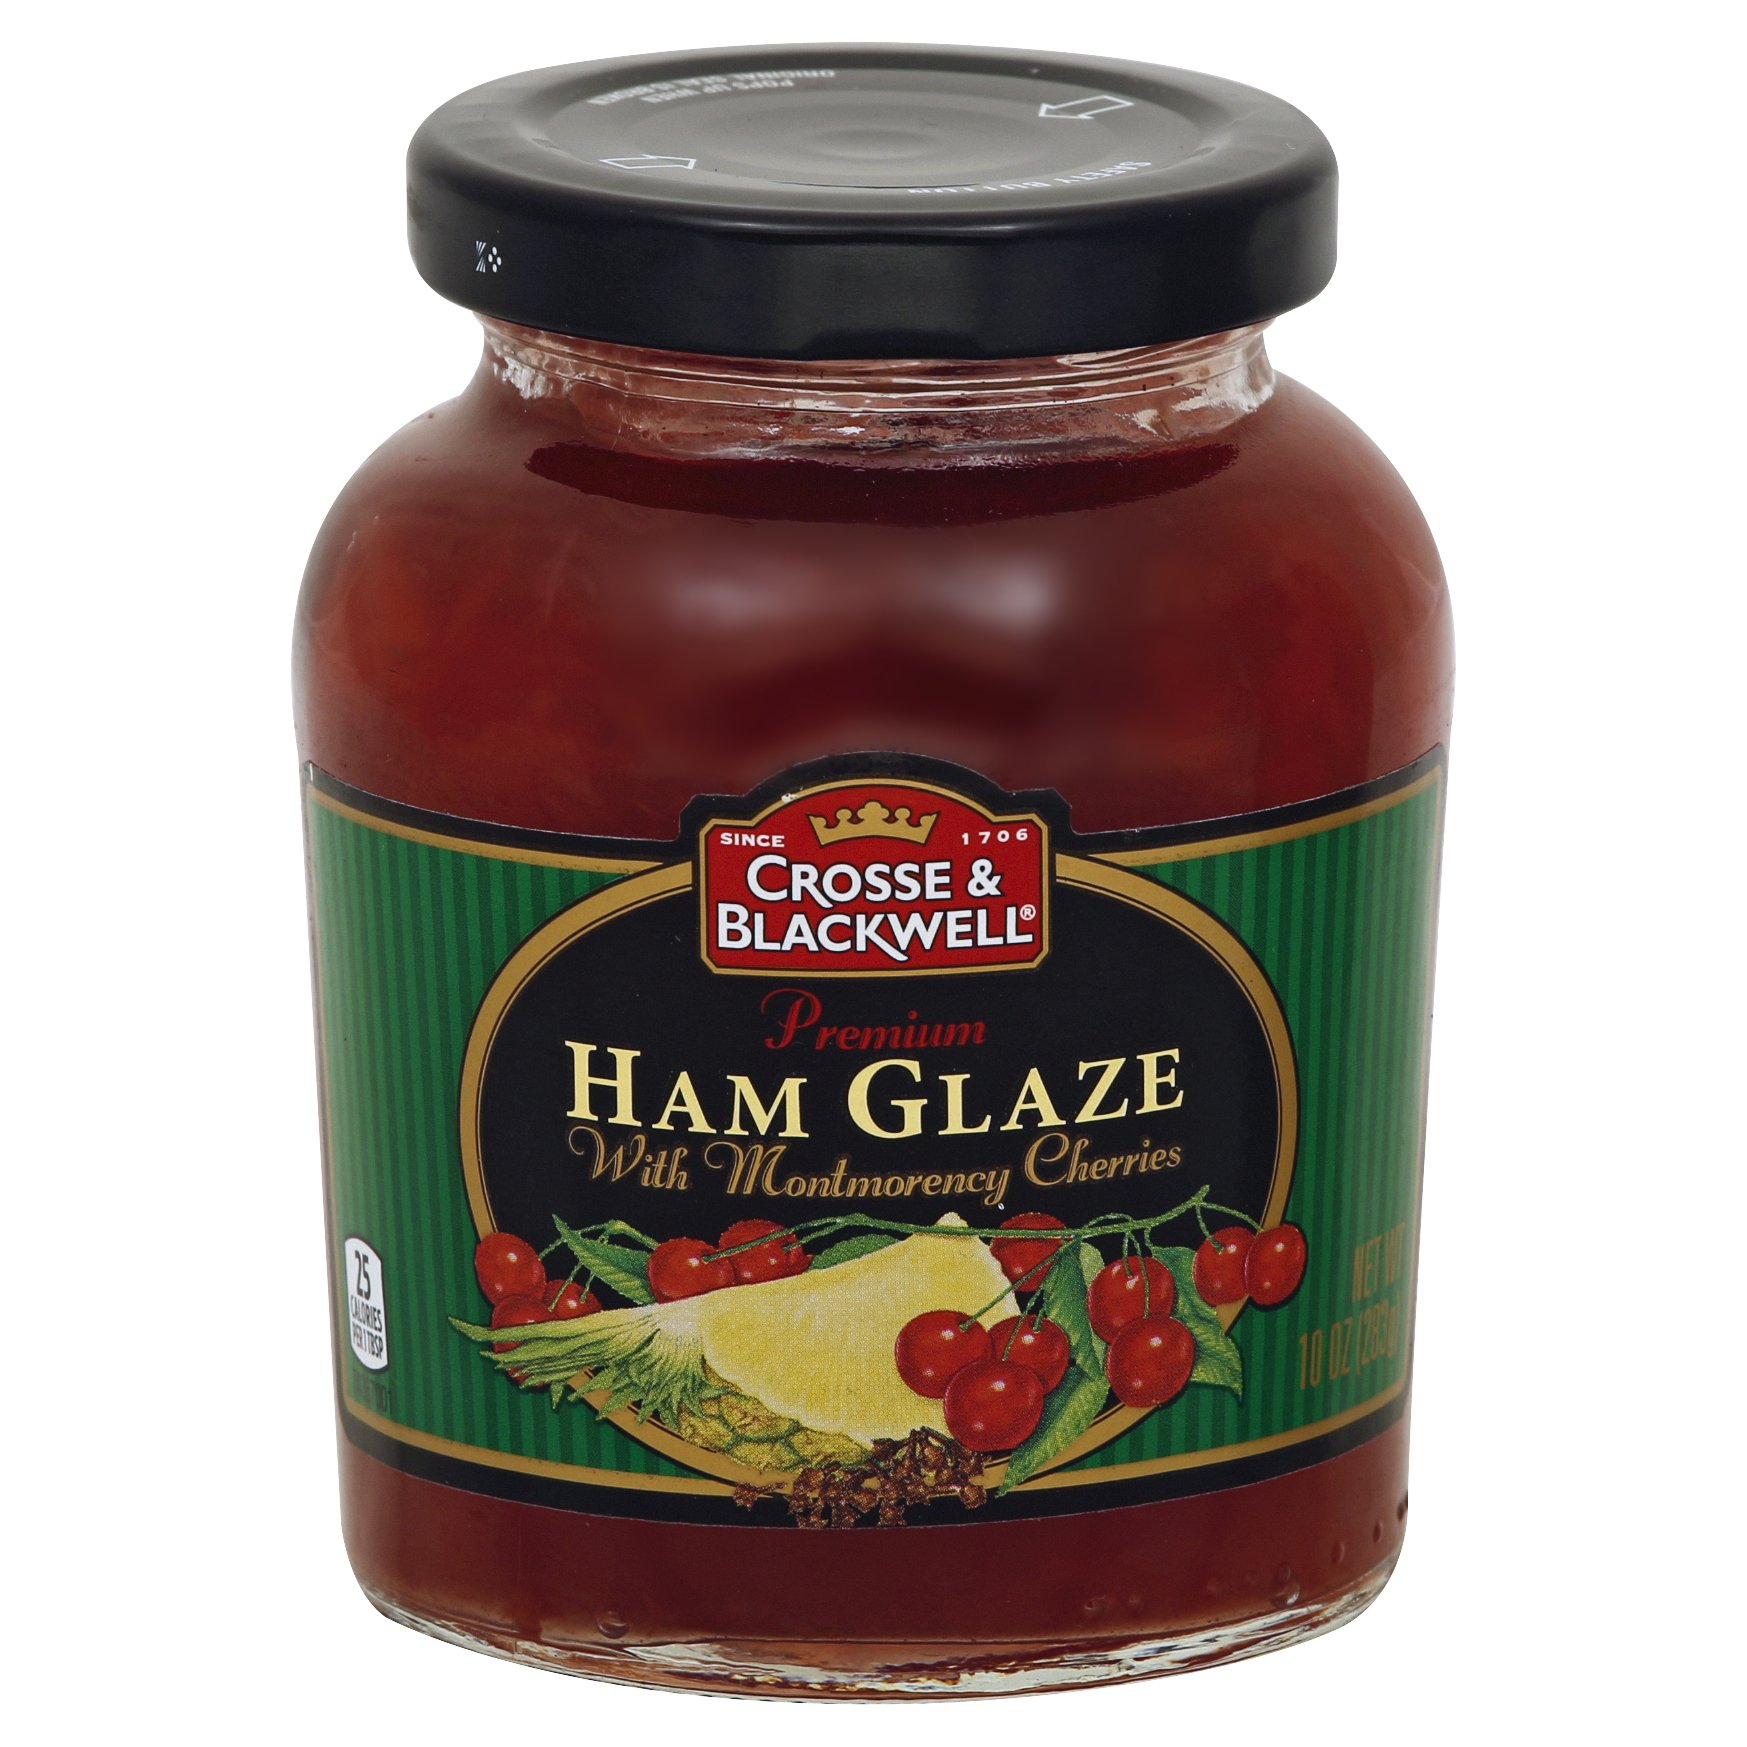 Crosse & Blackwell  Premium Ham Glaze with Montmorency Cherries